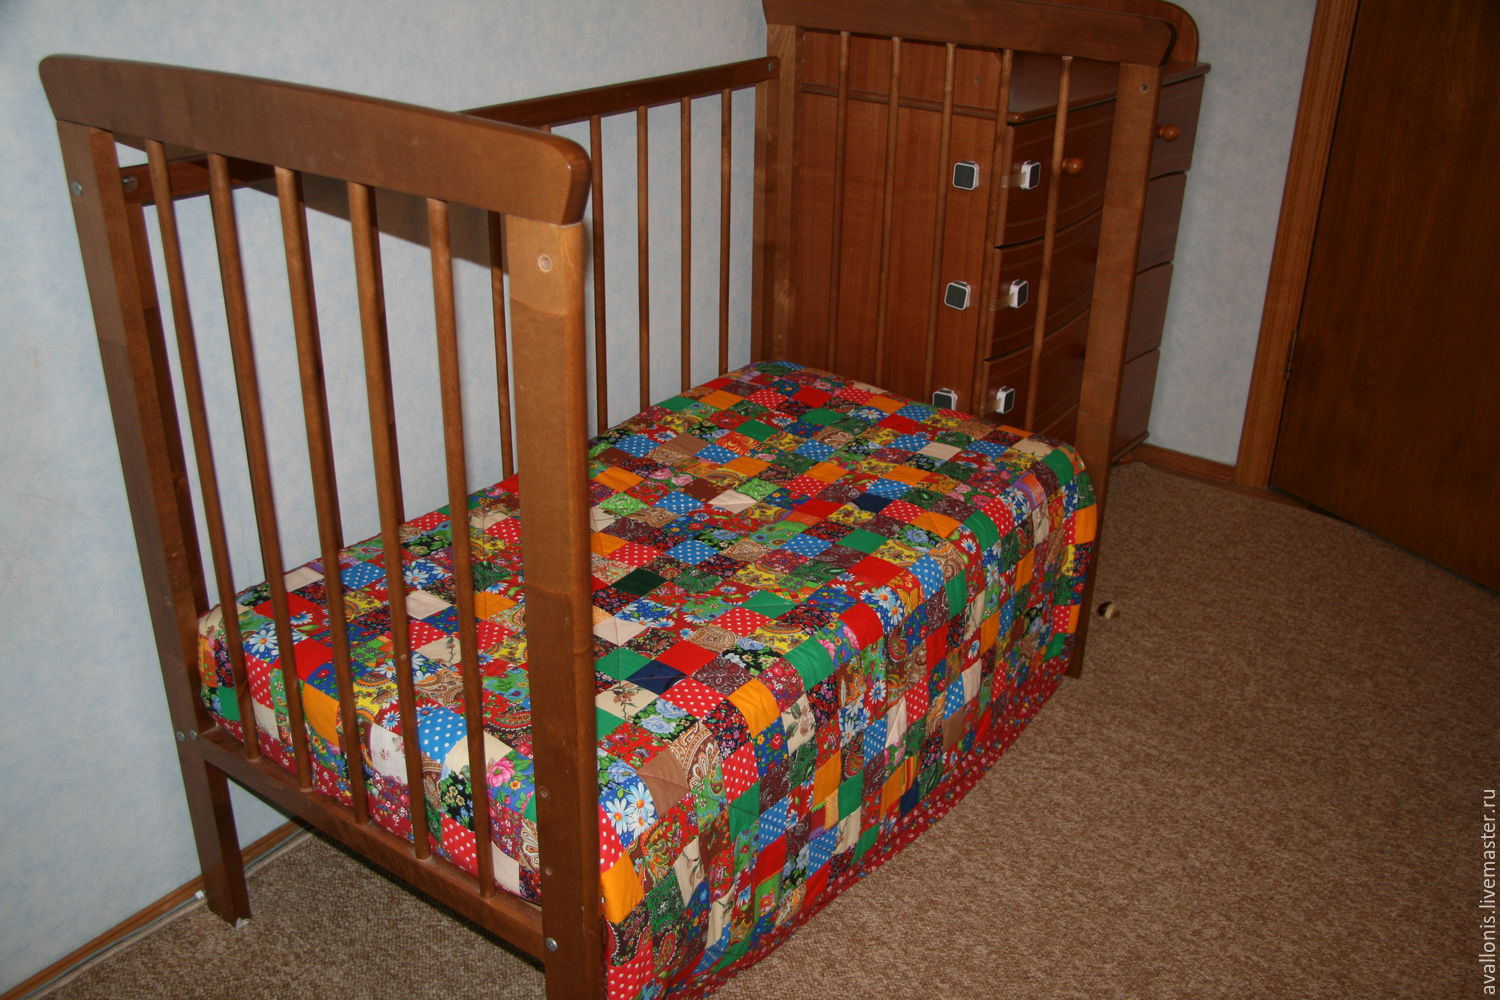 'Colorful' baby, cotton, quilt, Blanket, Moscow,  Фото №1